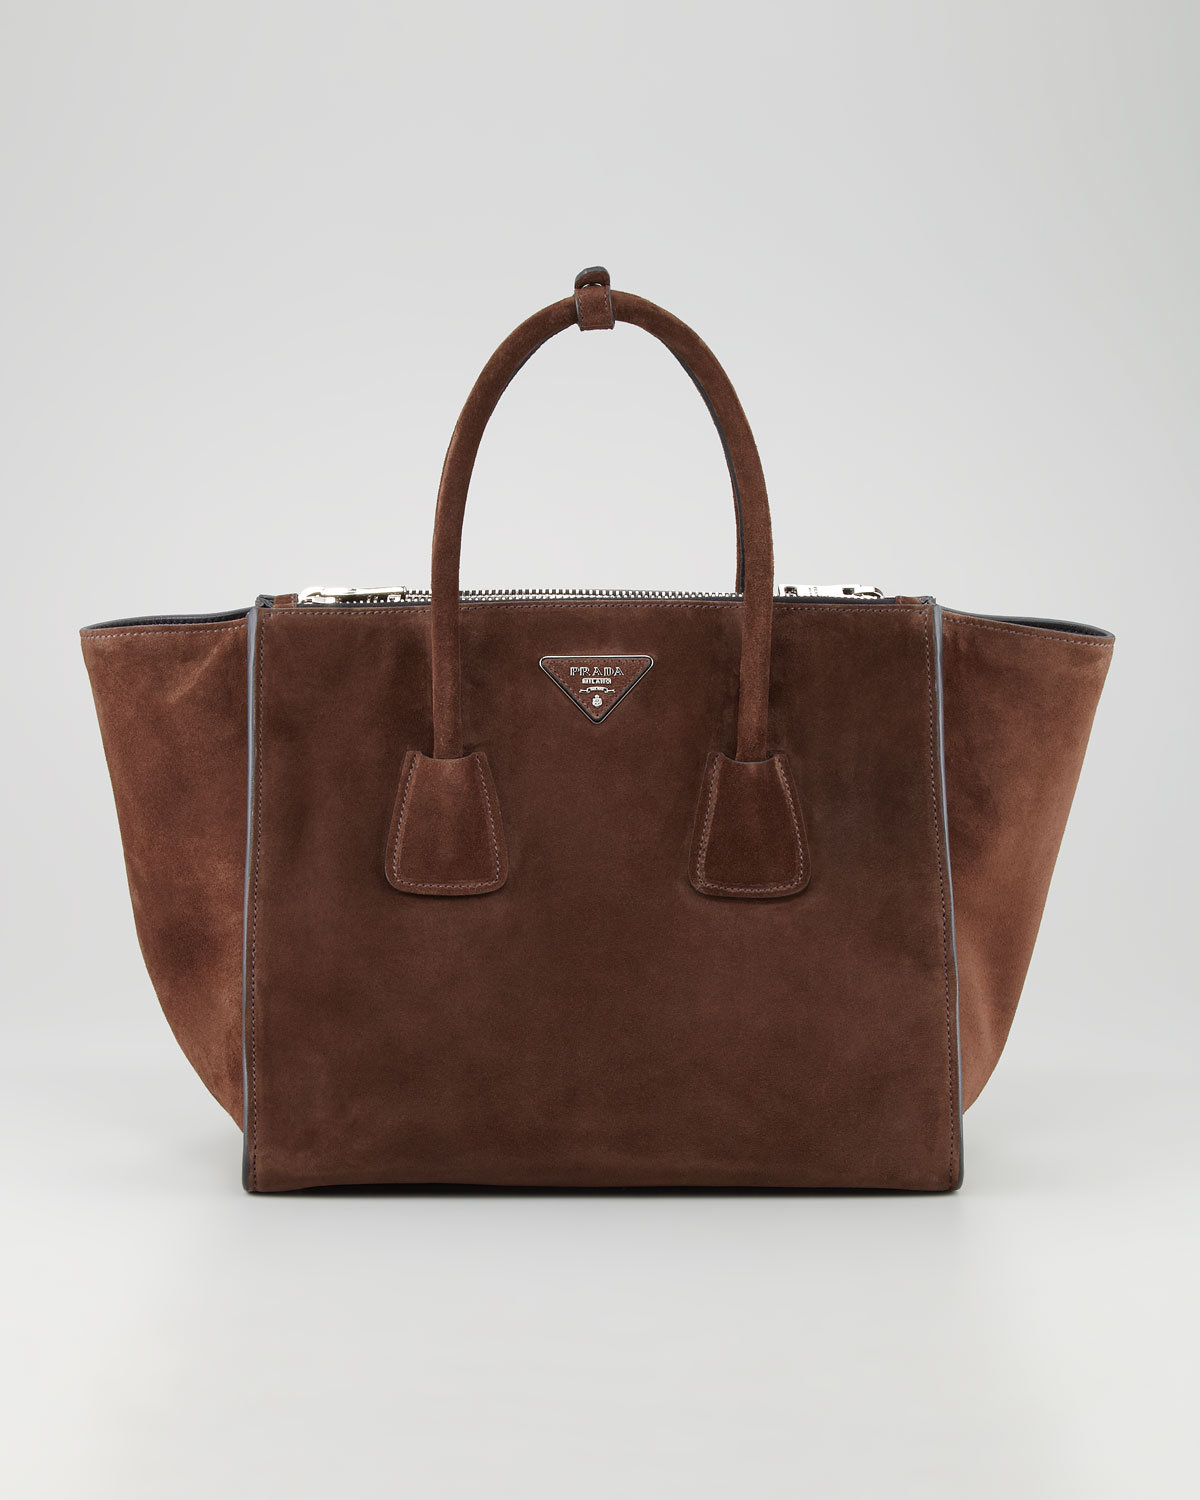 3d25db39637e Prada Suede Twin Pocket Tote Bag in Brown - Lyst